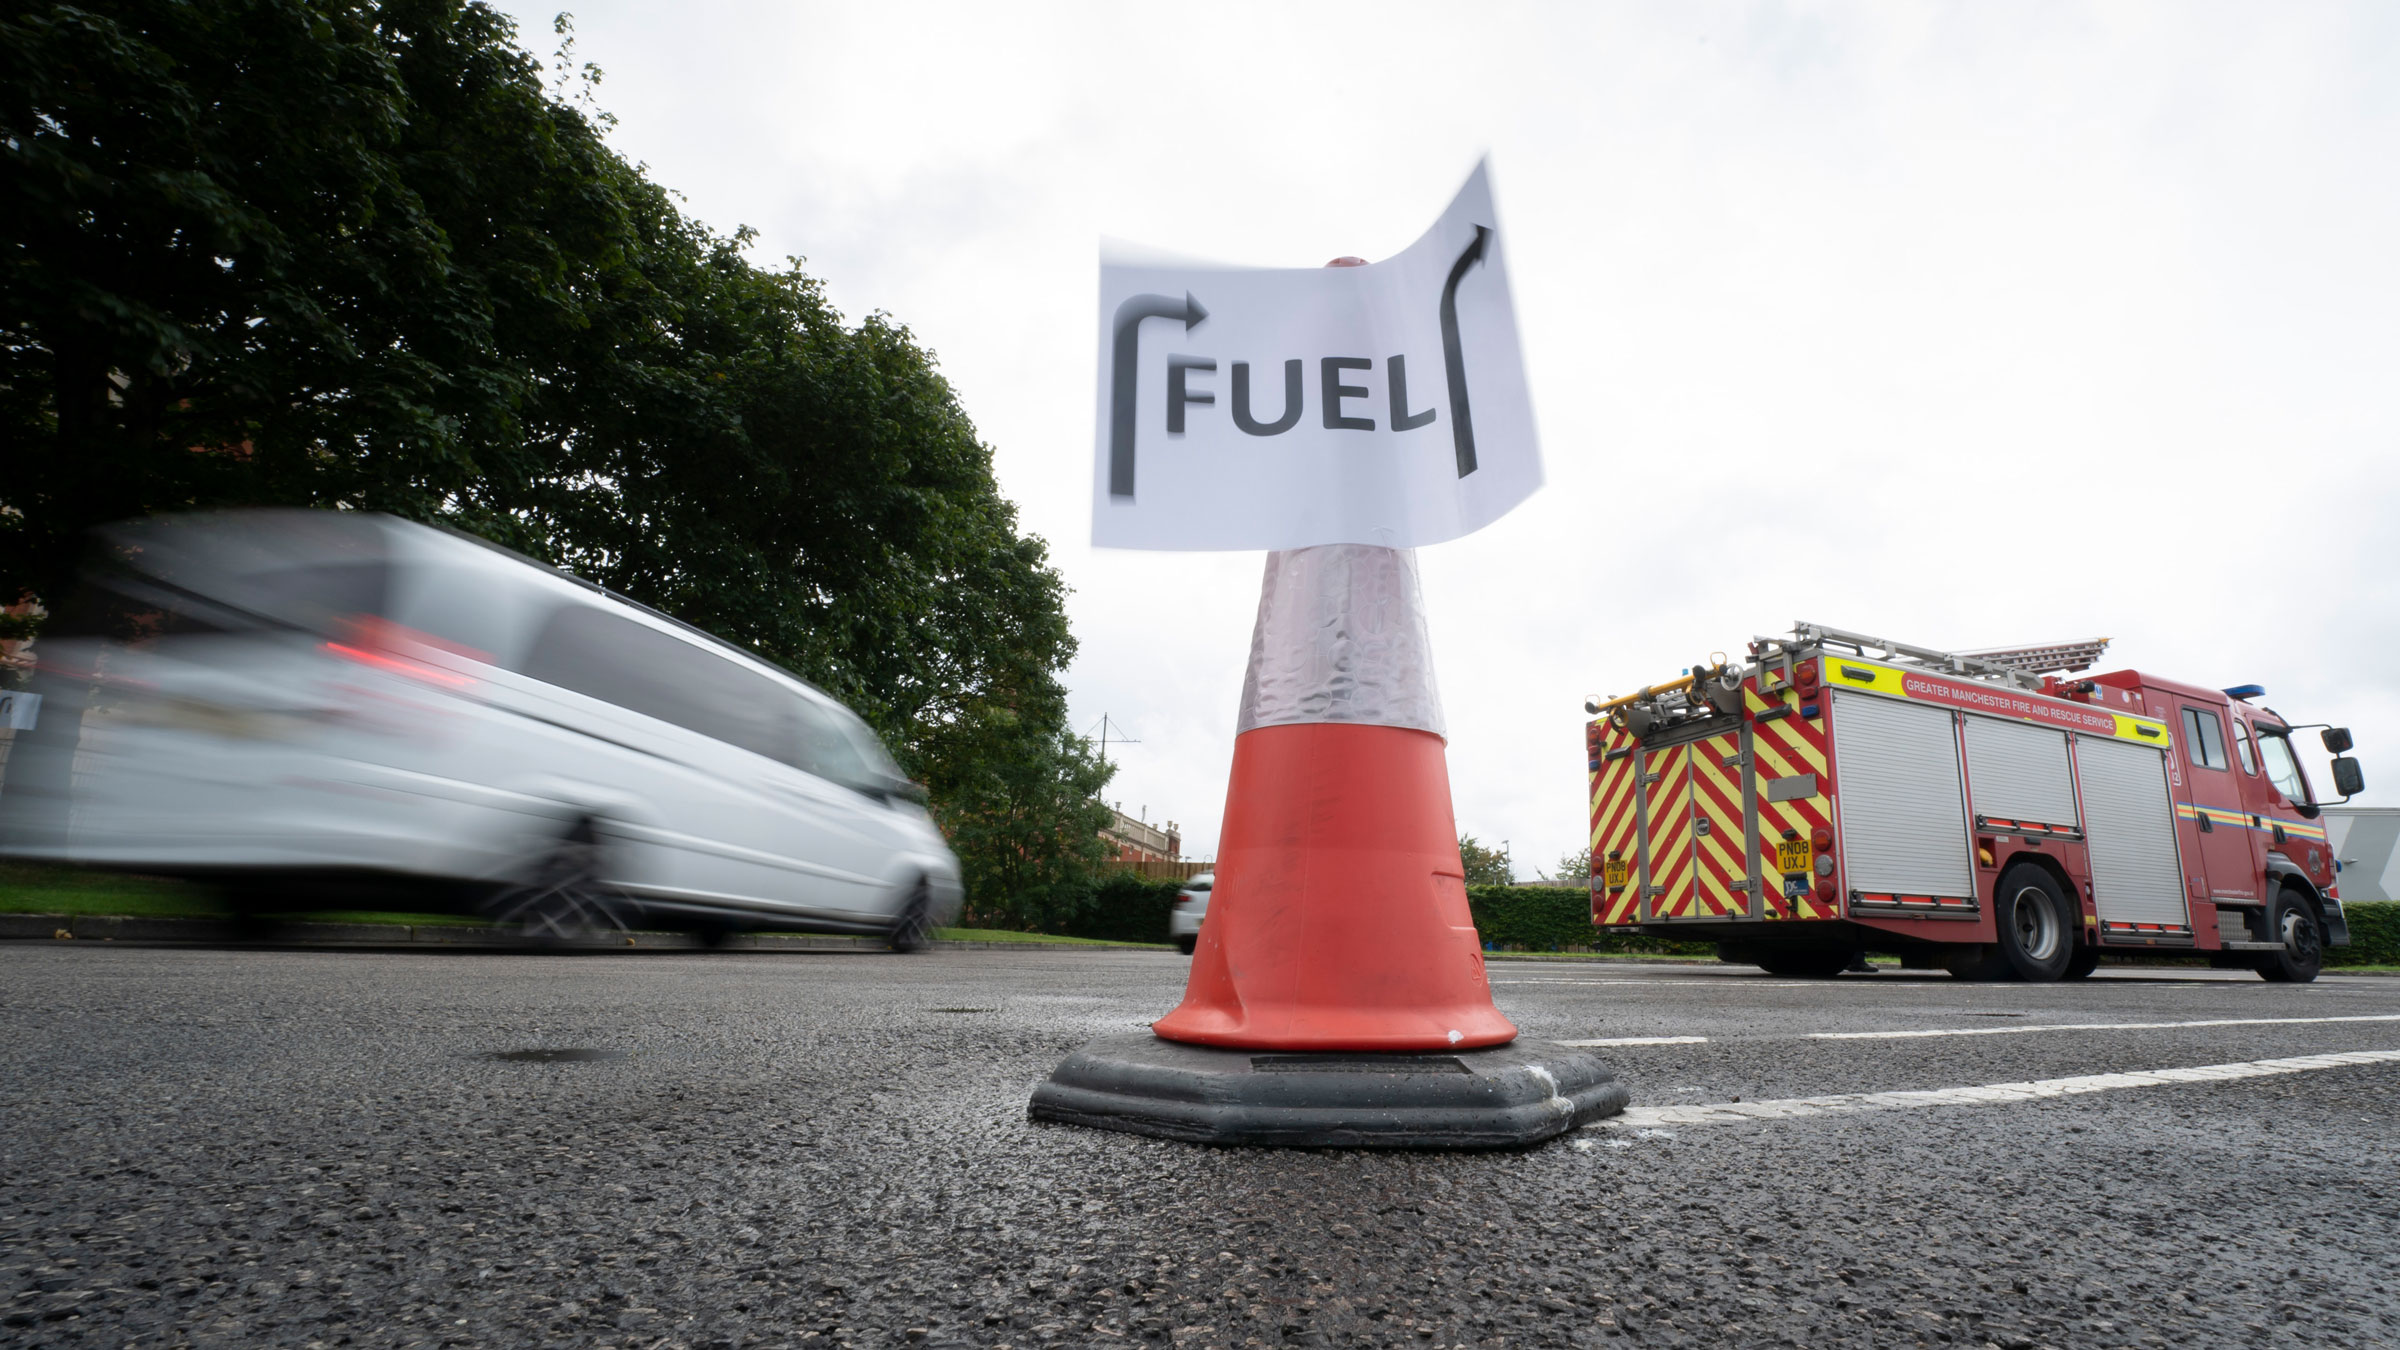 Vehicles arrive at a gas station in Manchester, England, on Tuesday.